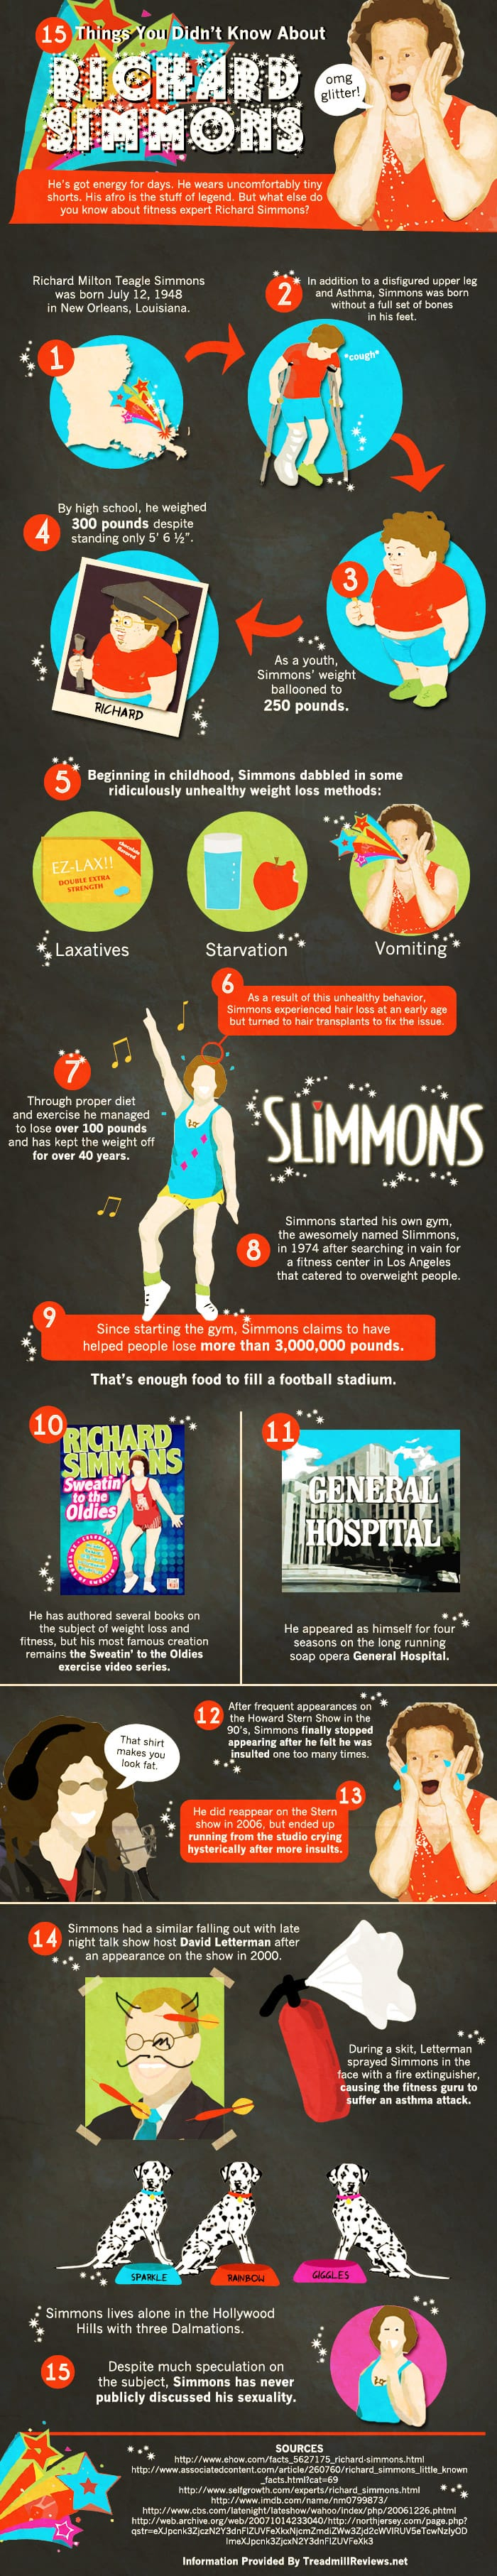 15 Facts About Richard Simmons